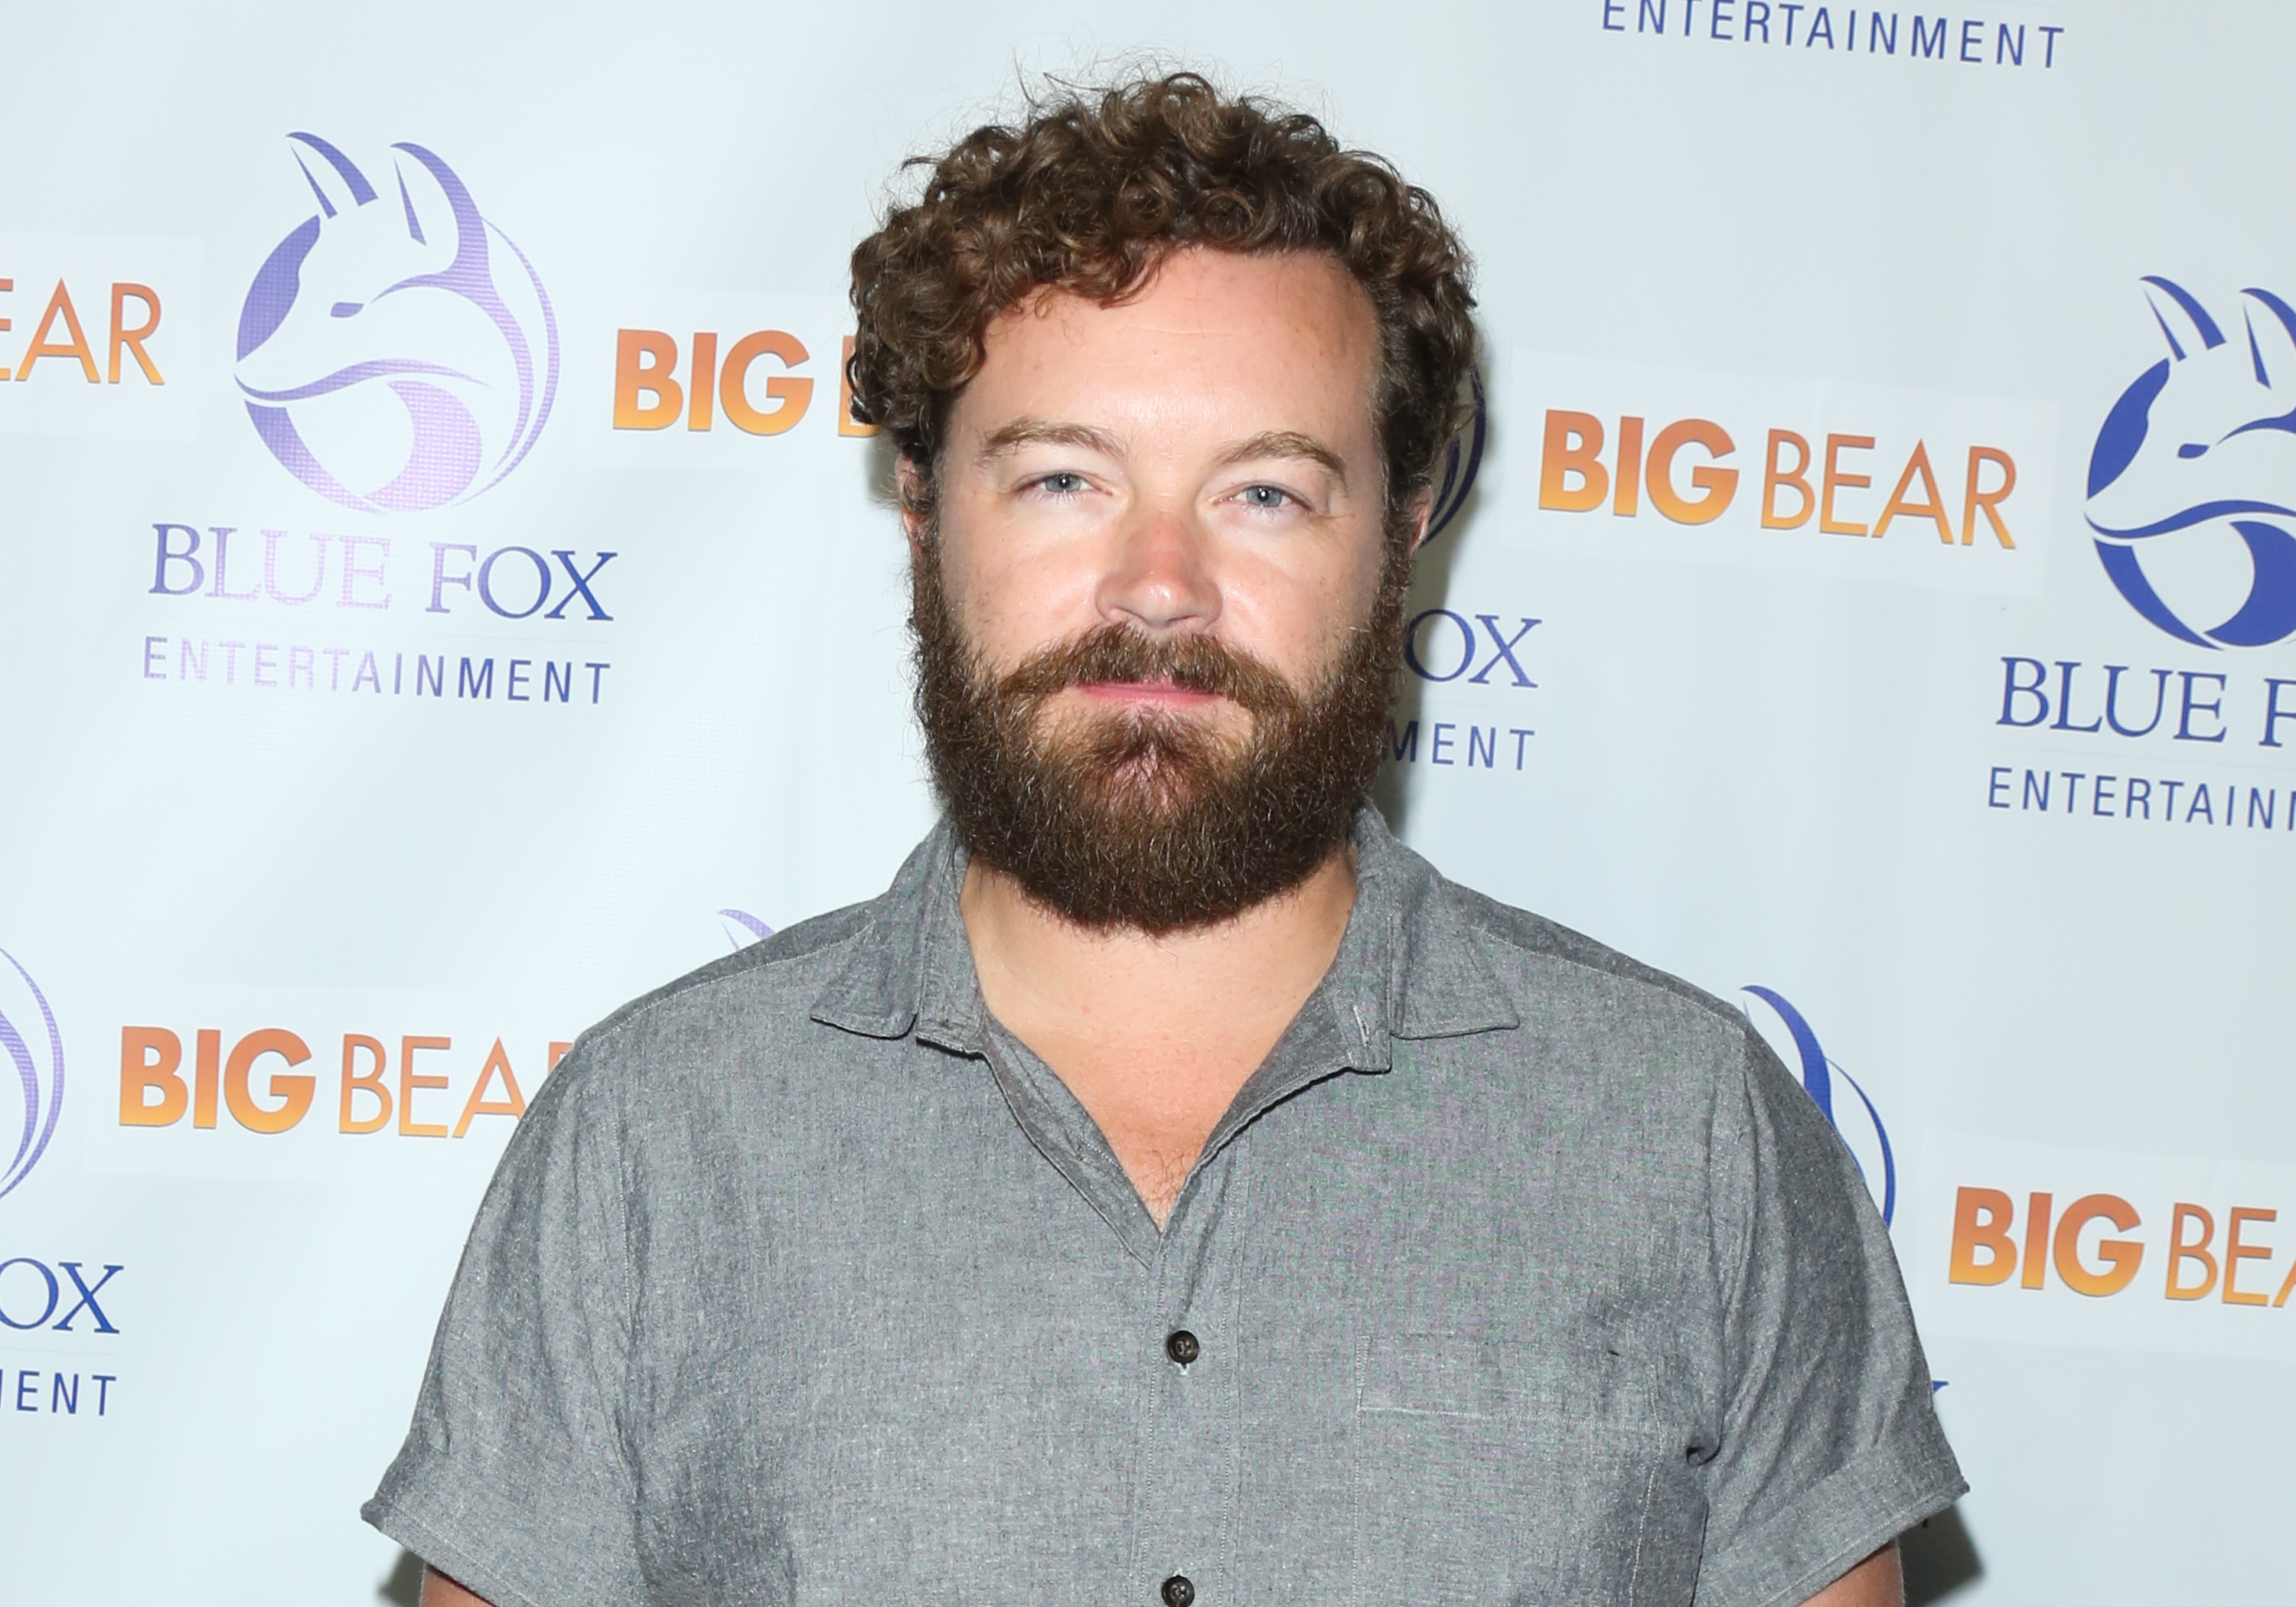 Danny Masterson attends the premiere of  Big Bear  at The London Hotel on September 19, 2017 in West Hollywood, California.